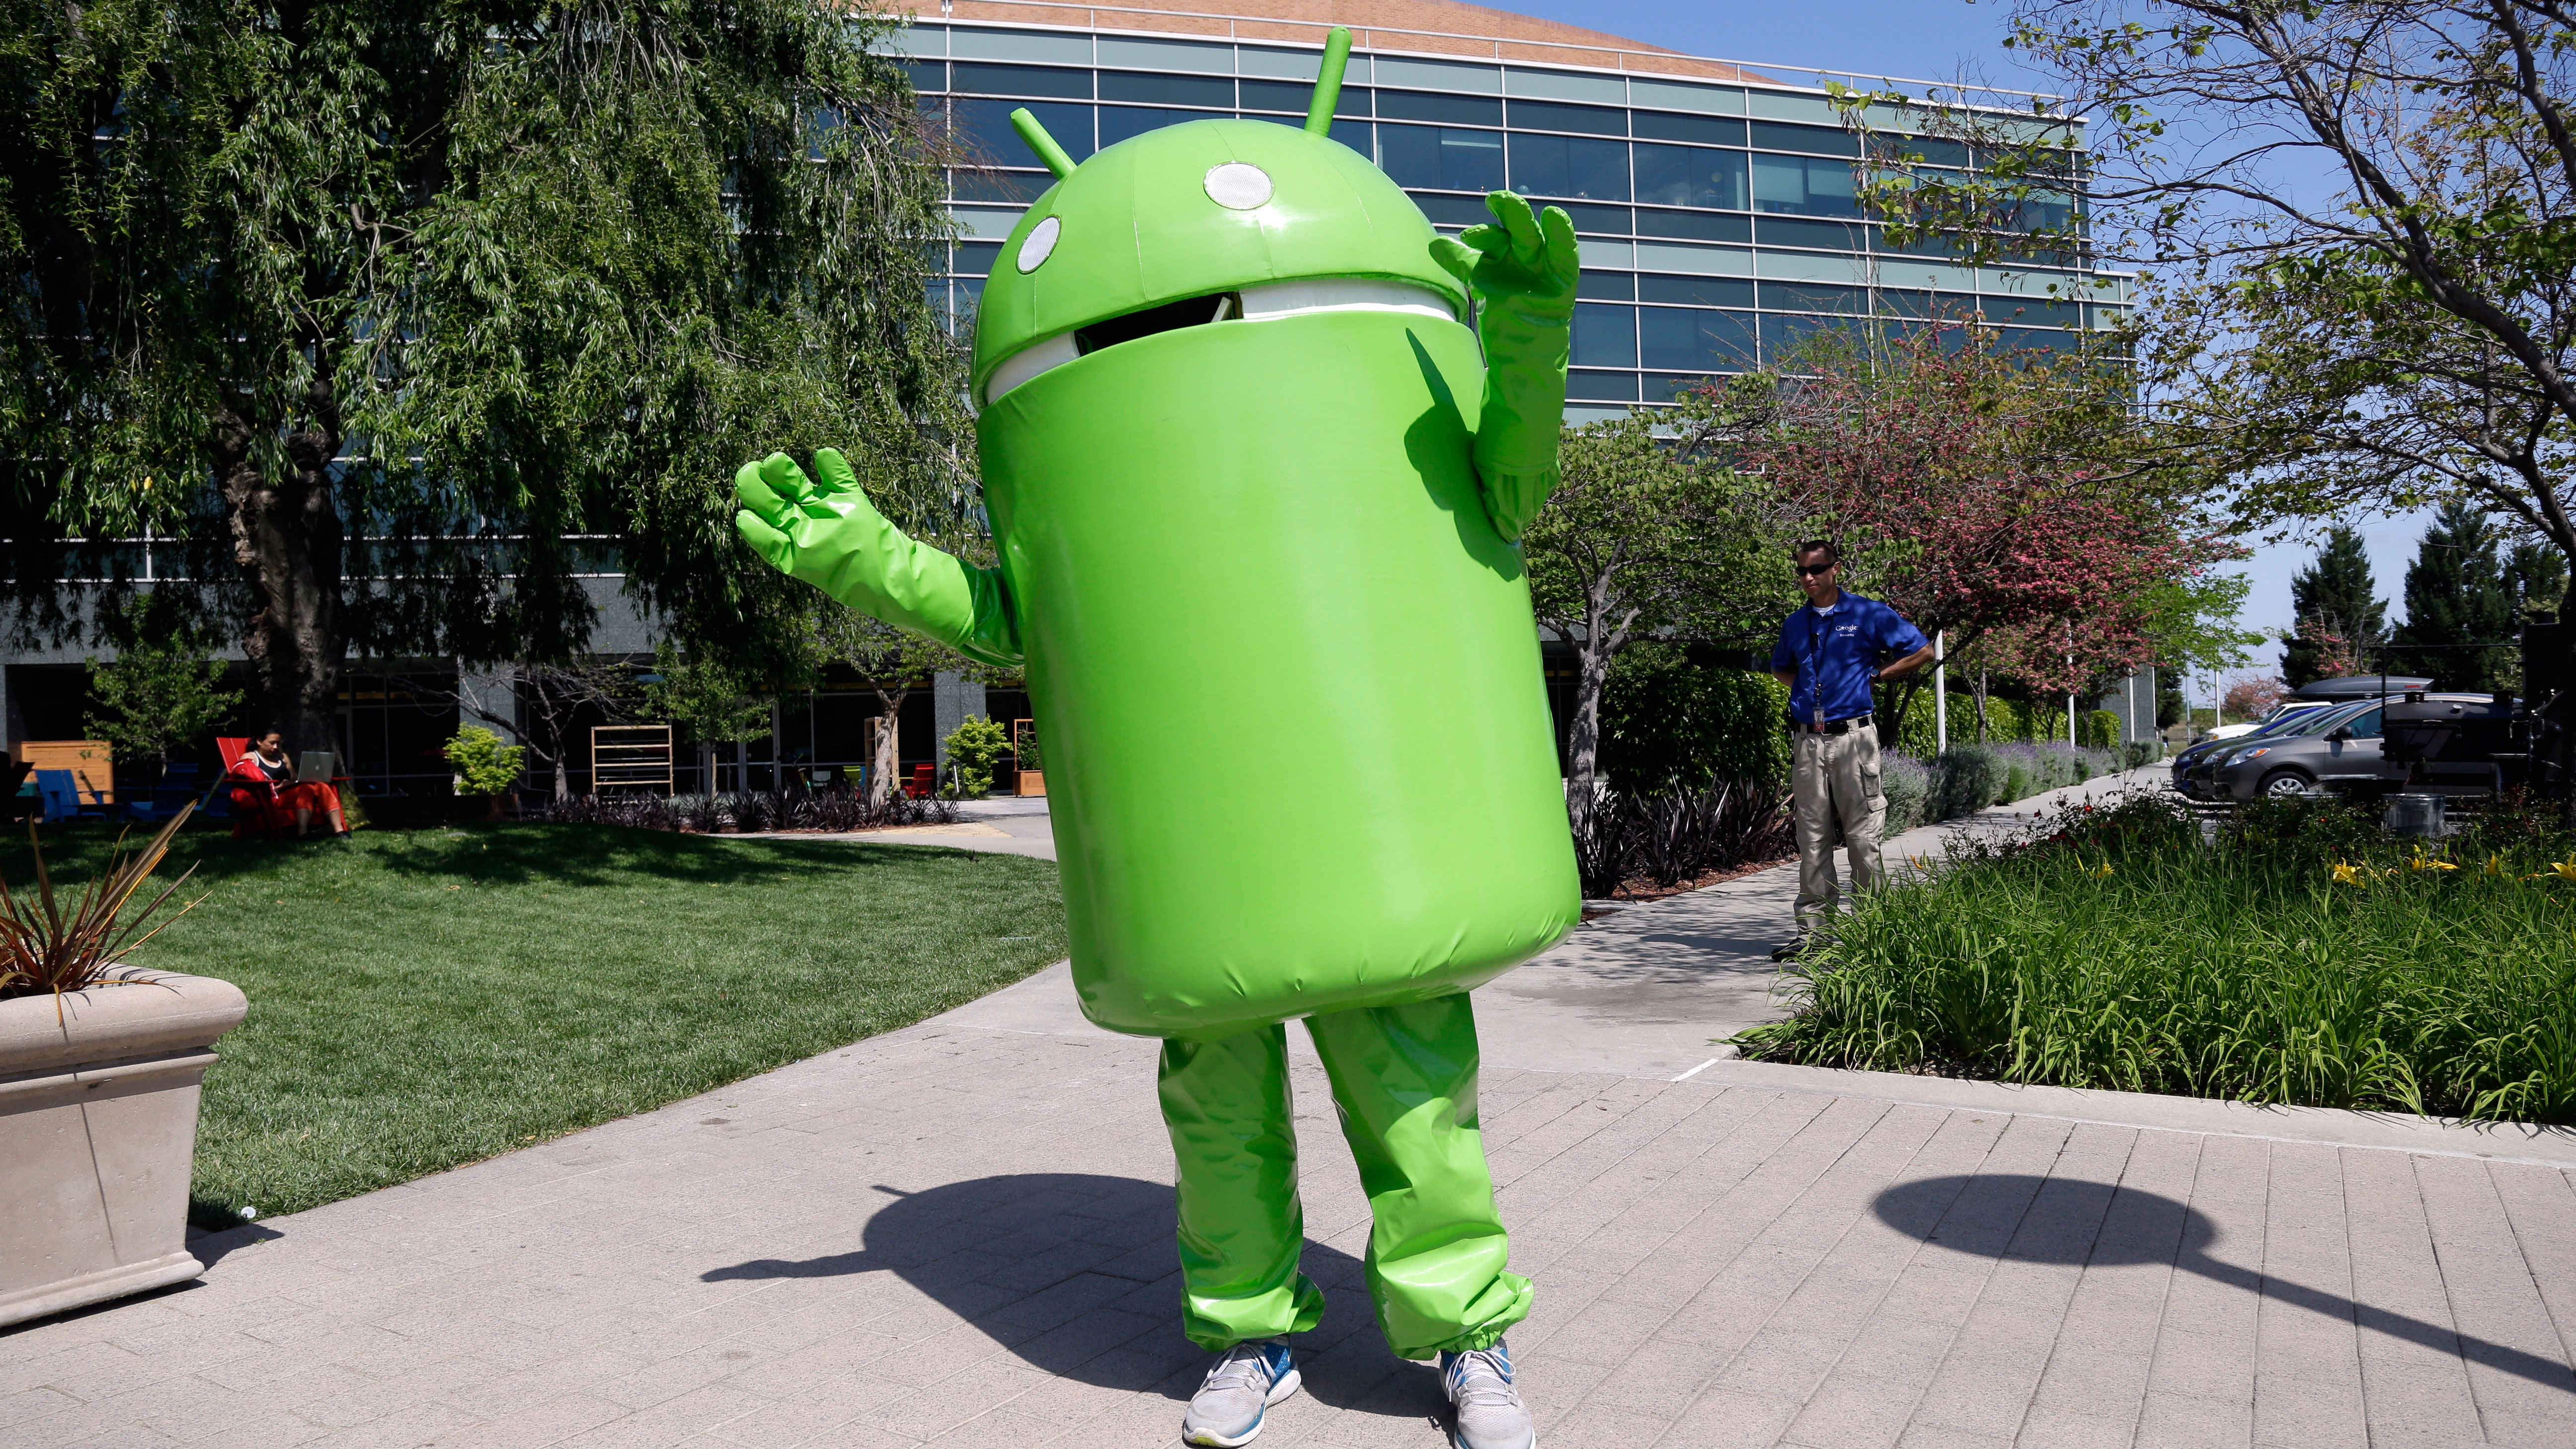 A person costumed as the Android operating system mascot greets visitors at Google headquarters in Mountain View, Calif., Thursday, April 25, 2013. (AP Photo/Marcio Jose Sanchez)